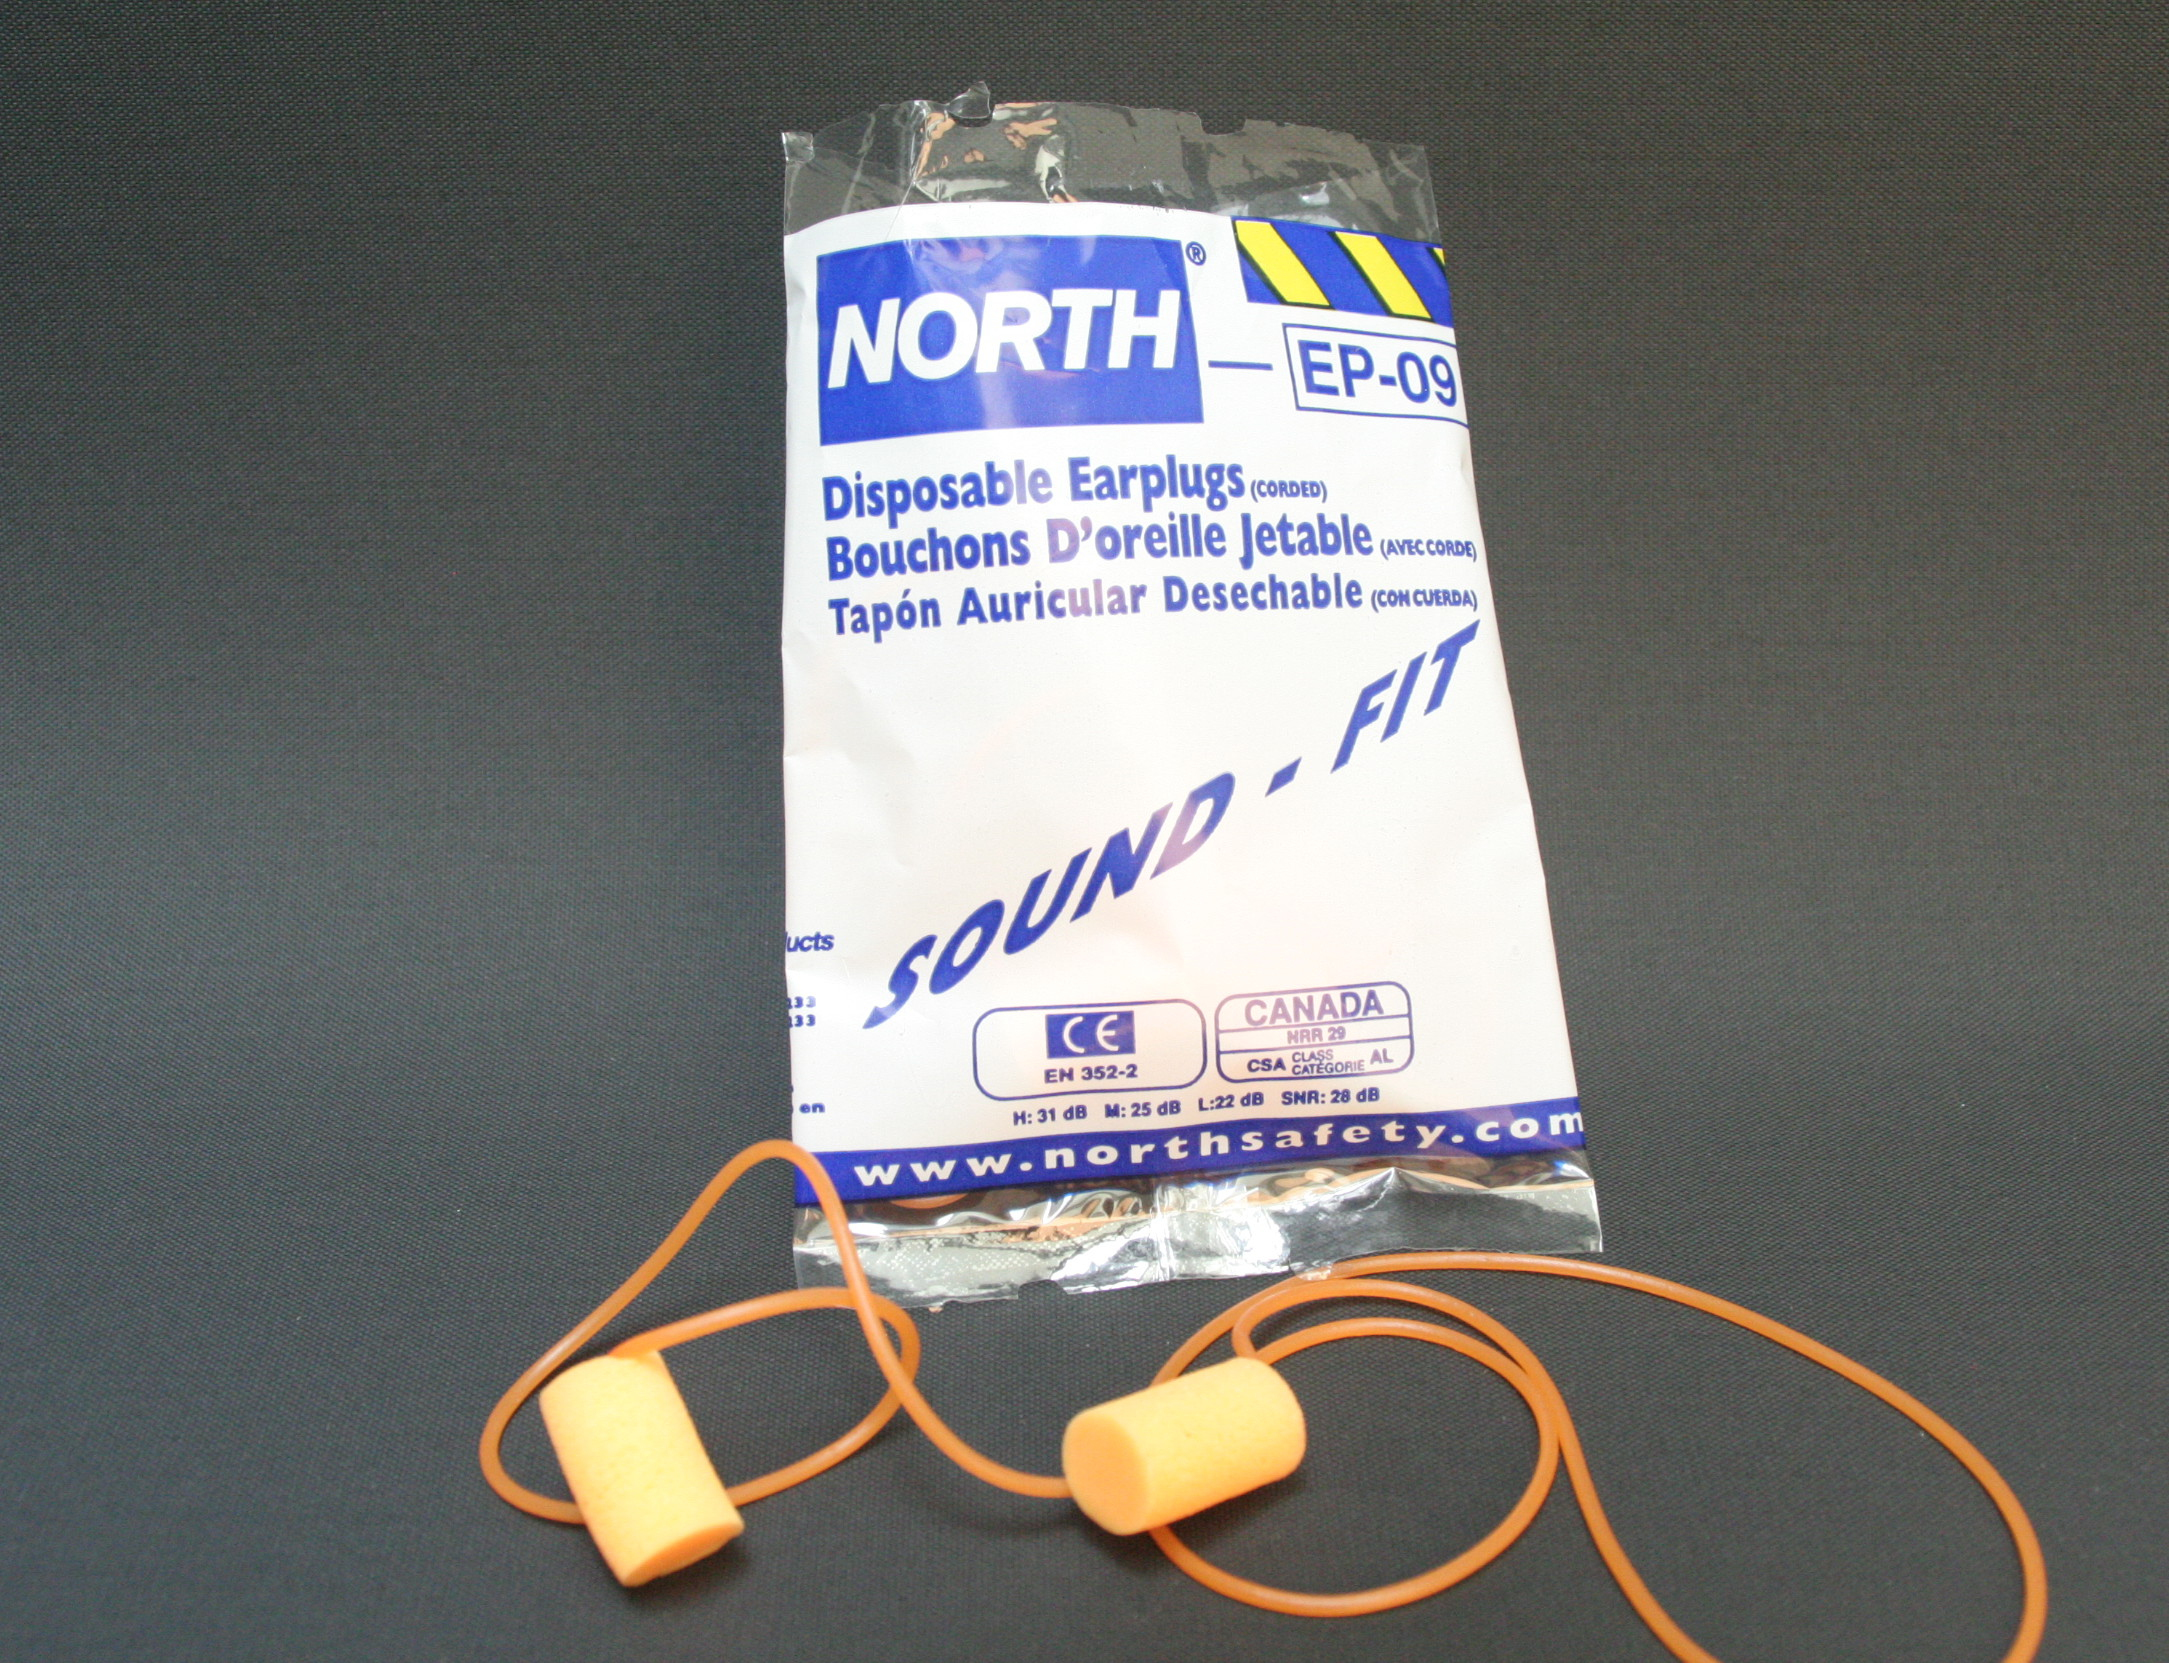 Oregon 515067 Ear Plugs with Neck String and Box SNR 25 dB